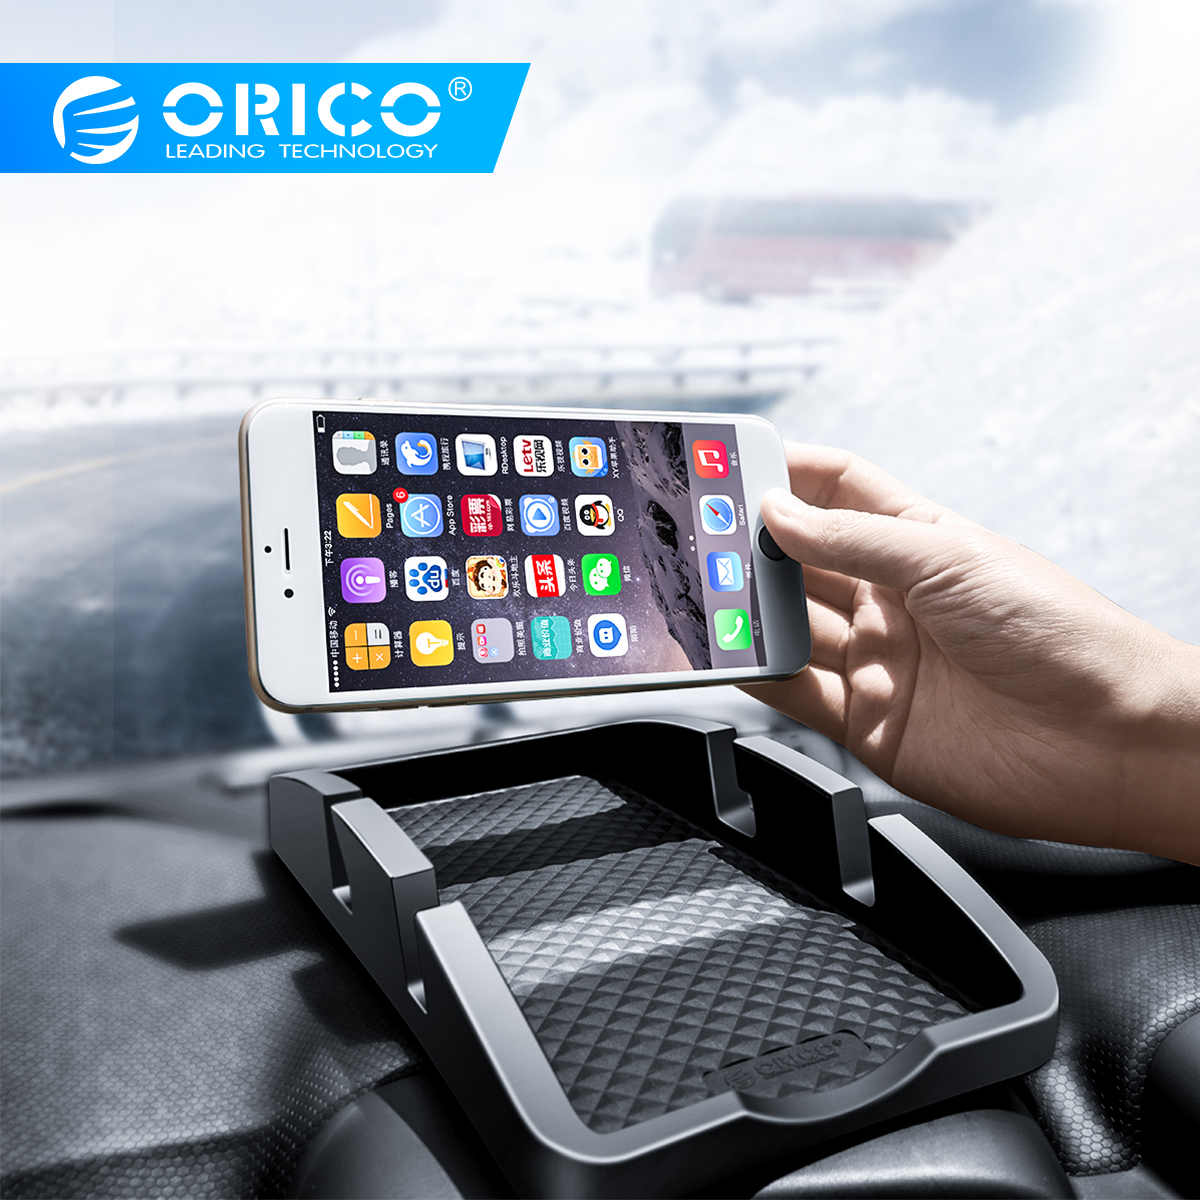 ORICO Anti Slip Car Dashboard Phone Holder Car Smartphone Support Non Slip Pad Phone Stand Desk Mount Dual Slot Bracket